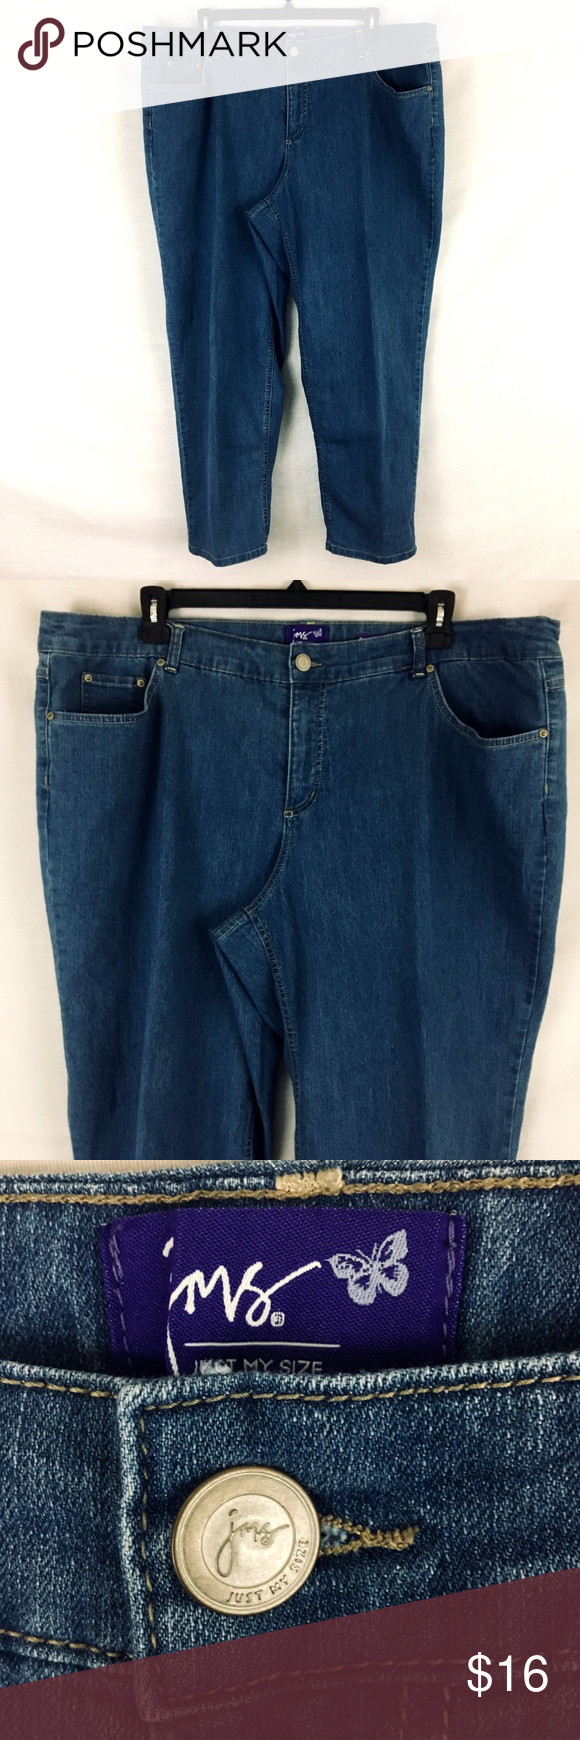 f60415a1b5b Just My Size Classic Fit Straight Mid Rise Jeans Just My Size Medium Blue  Wash Straight Classic Fit Jeans Women s size 26W Gently used